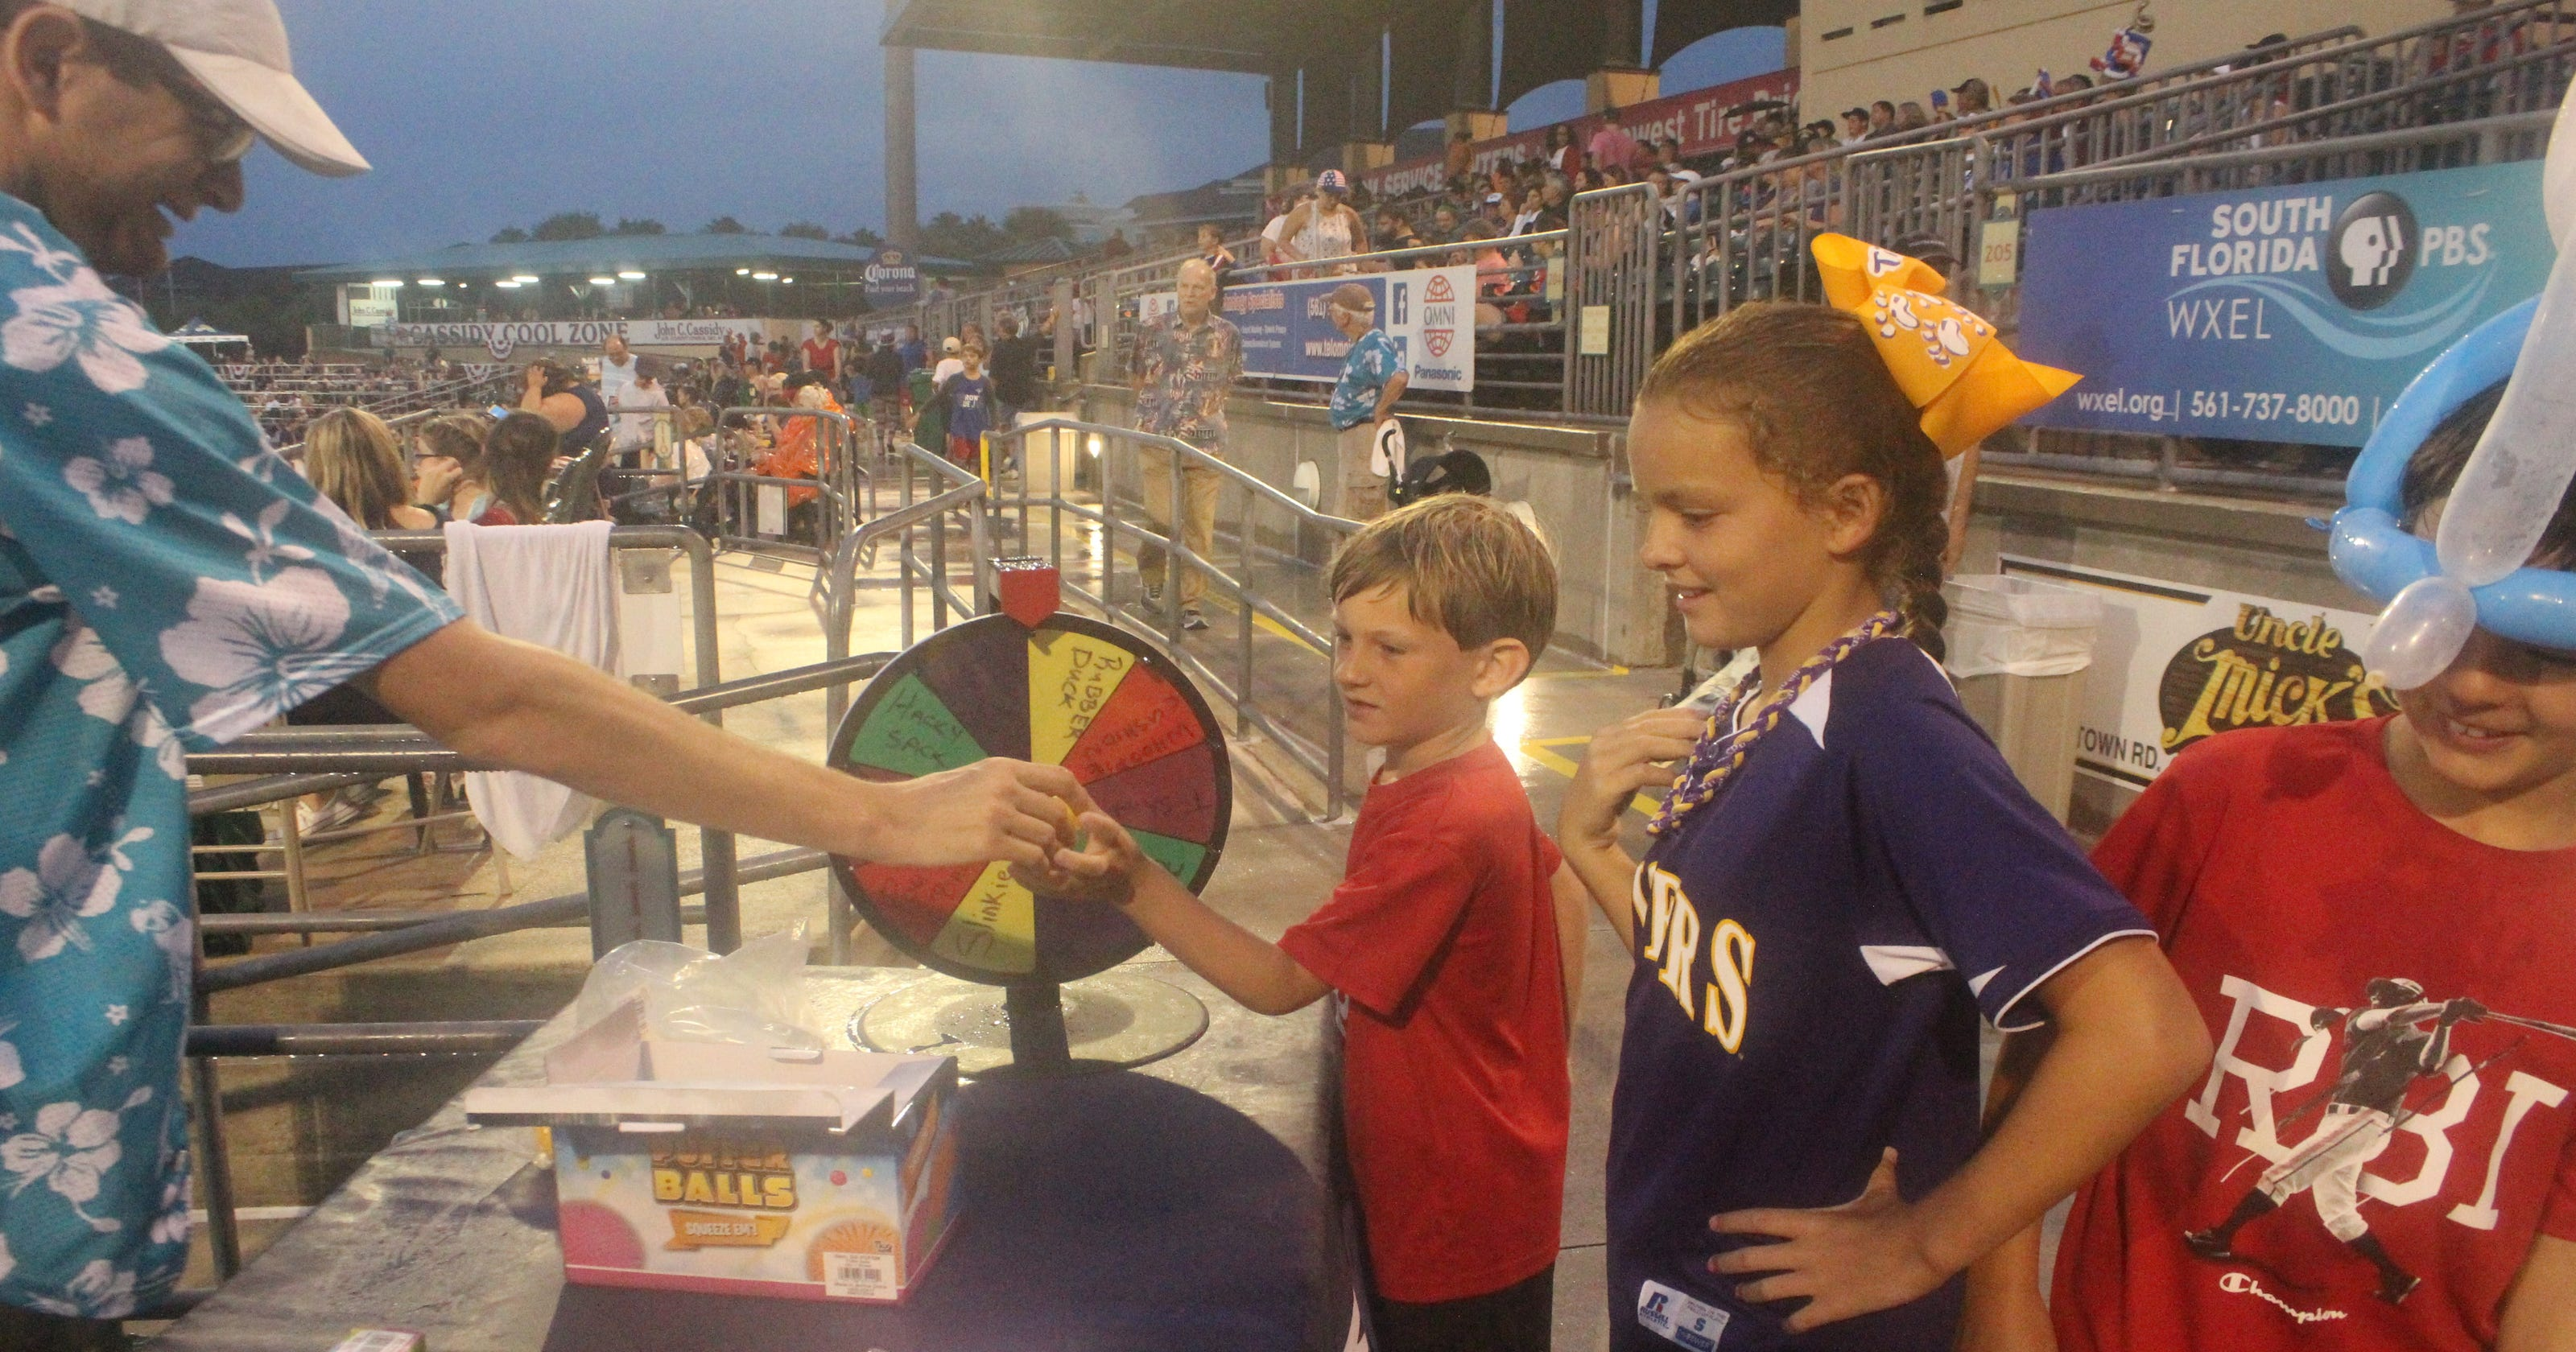 64702903f Games, promotional events ahead at Roger Dean Chevrolet Stadium